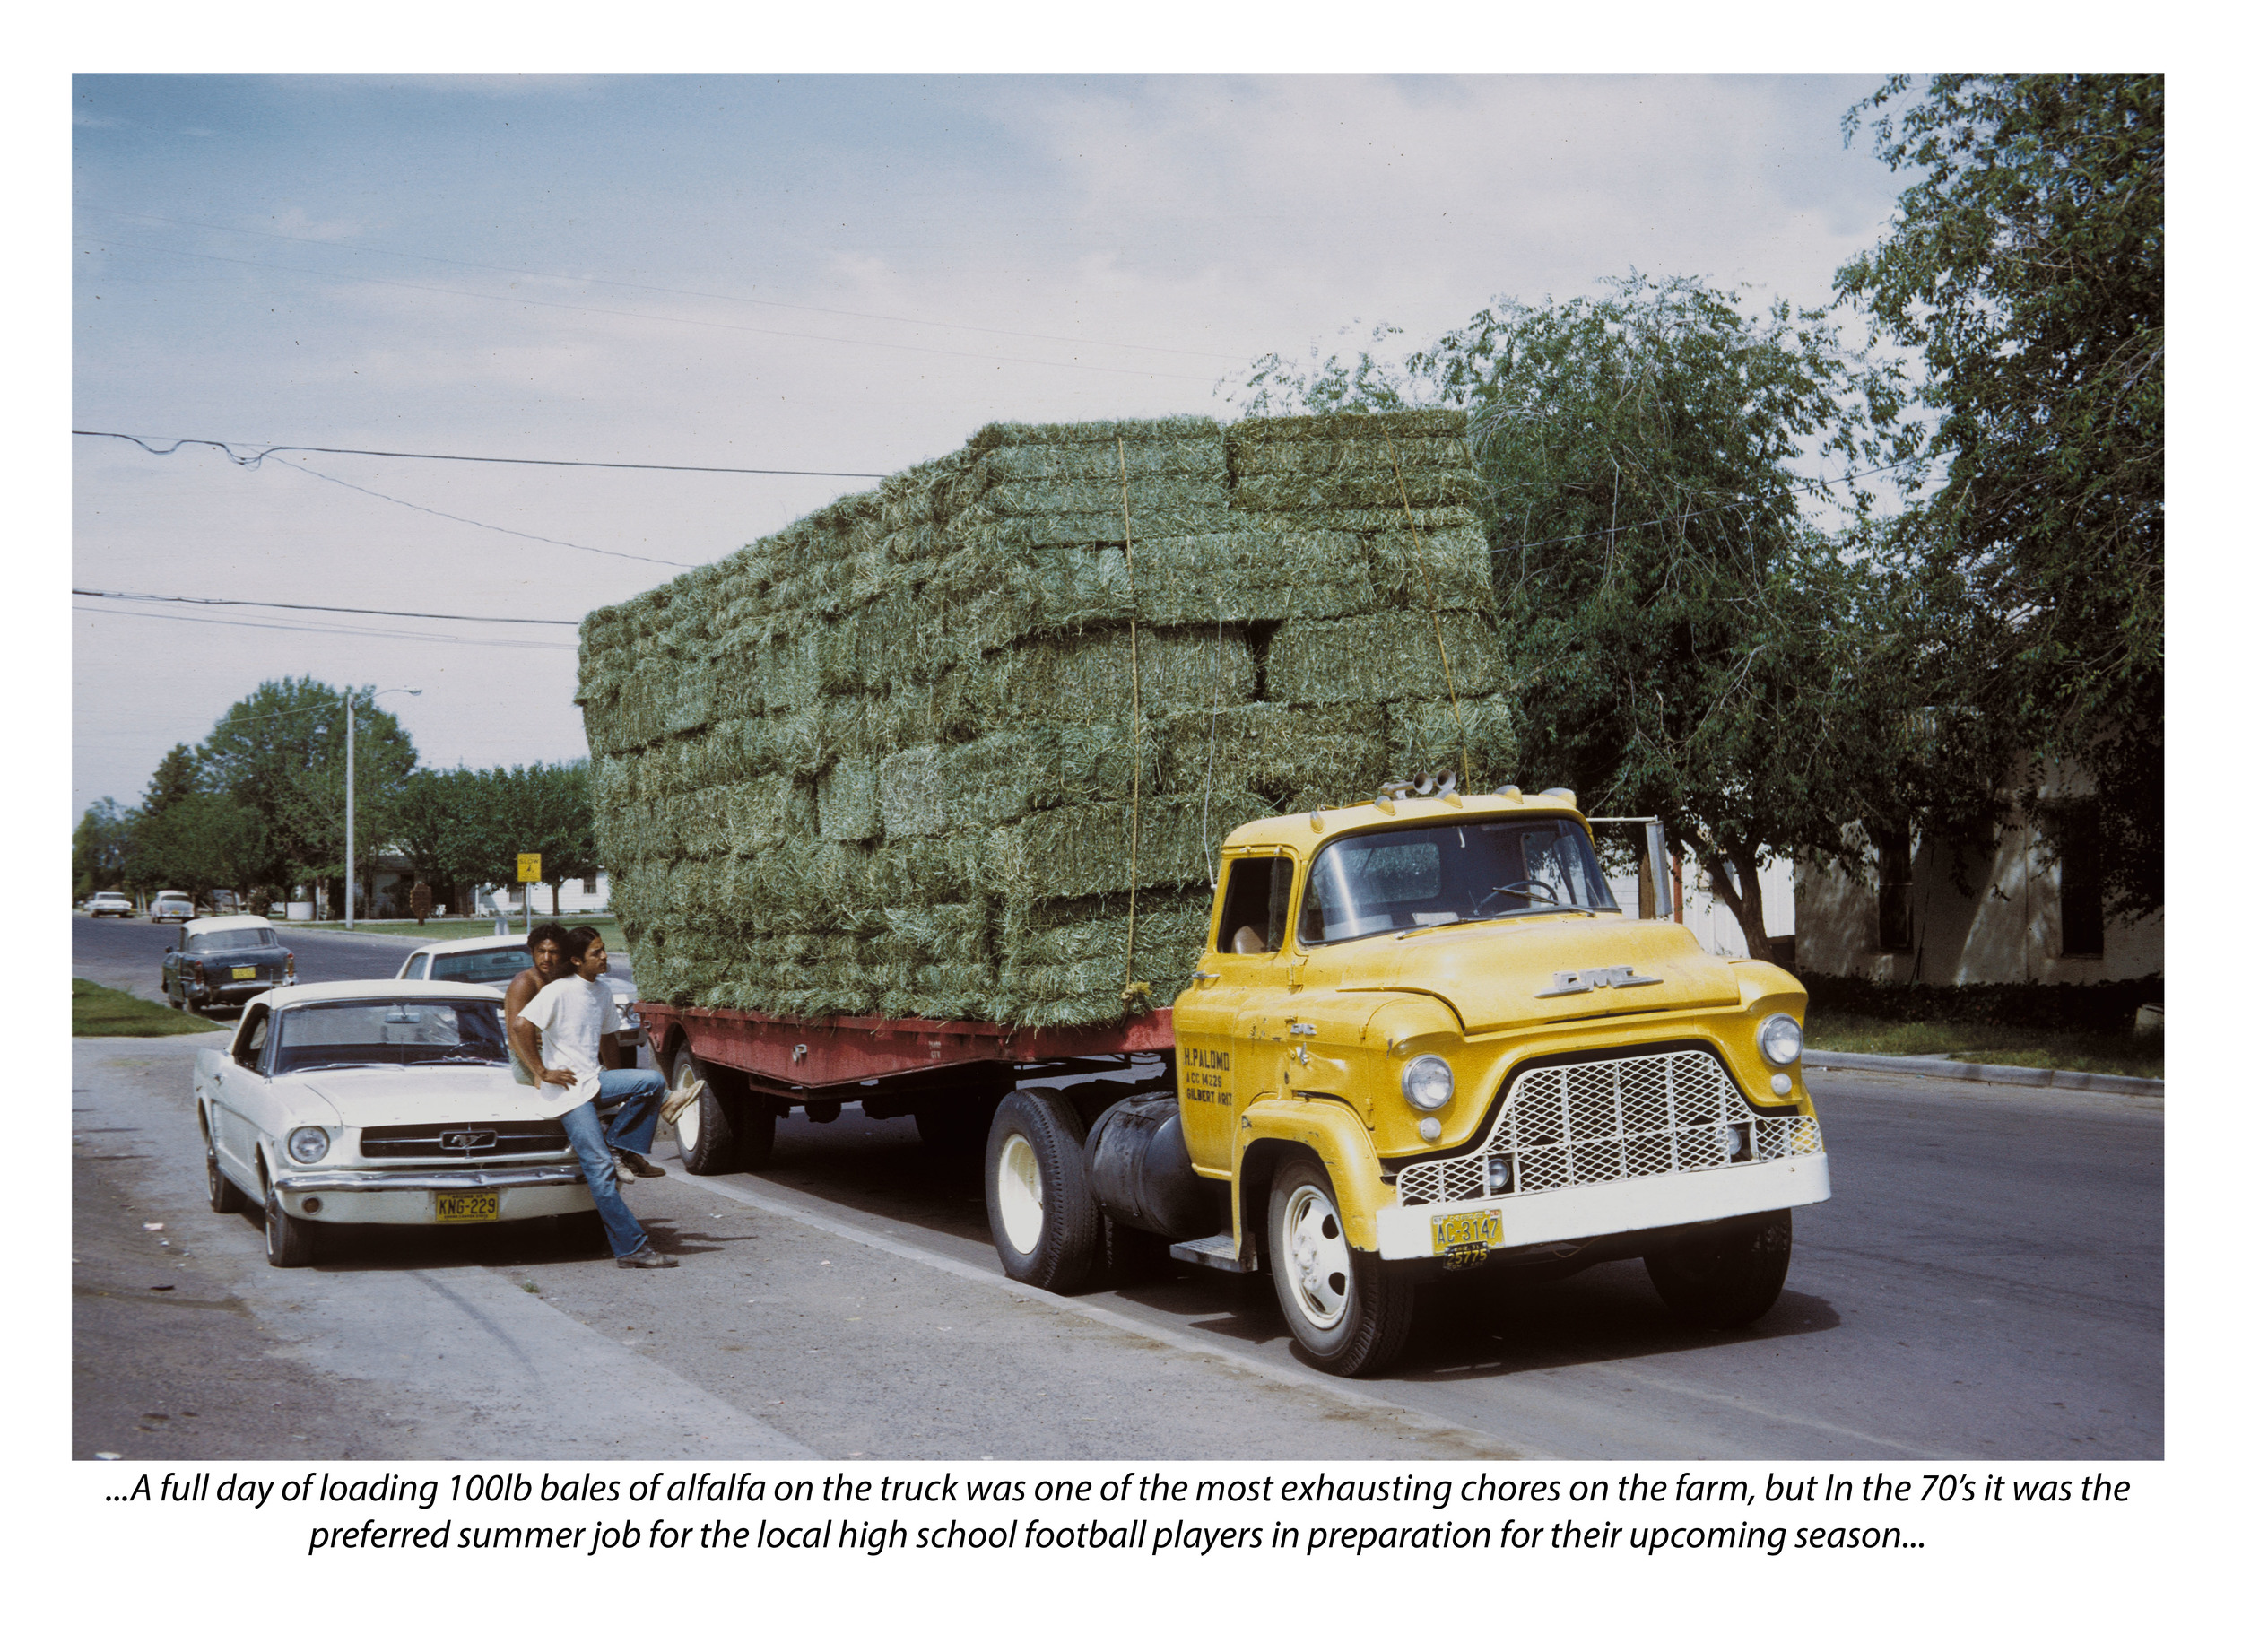 Bales on Truck (with photograph by Marvin Morrison)   Pigmented Inkjet Print with Text © 2013, Gina DeGideo